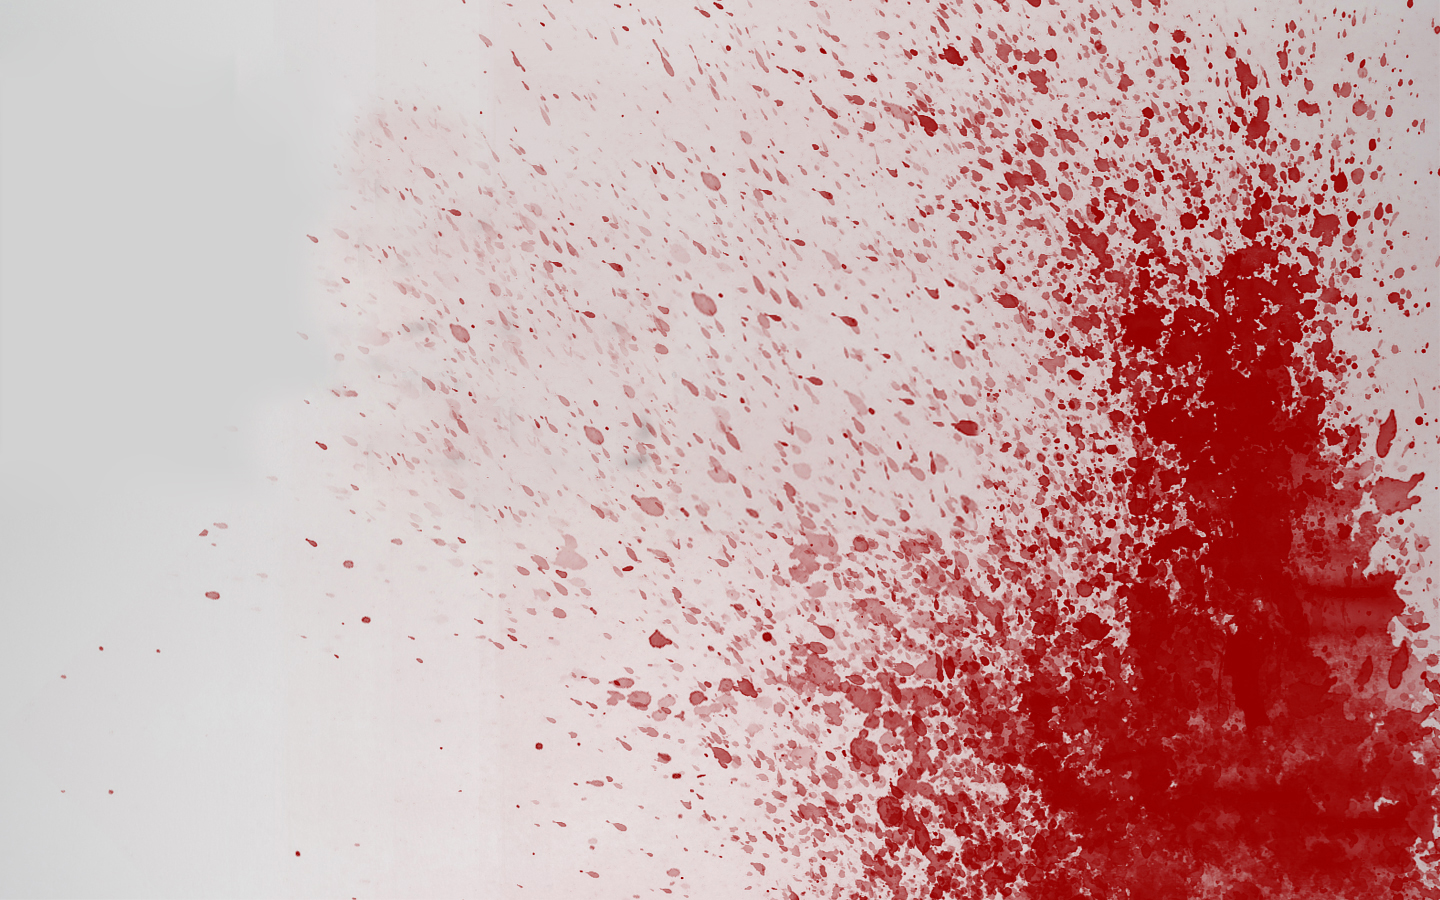 blood-splatter-wallpapers-backgrounds-for-powerpoint ...